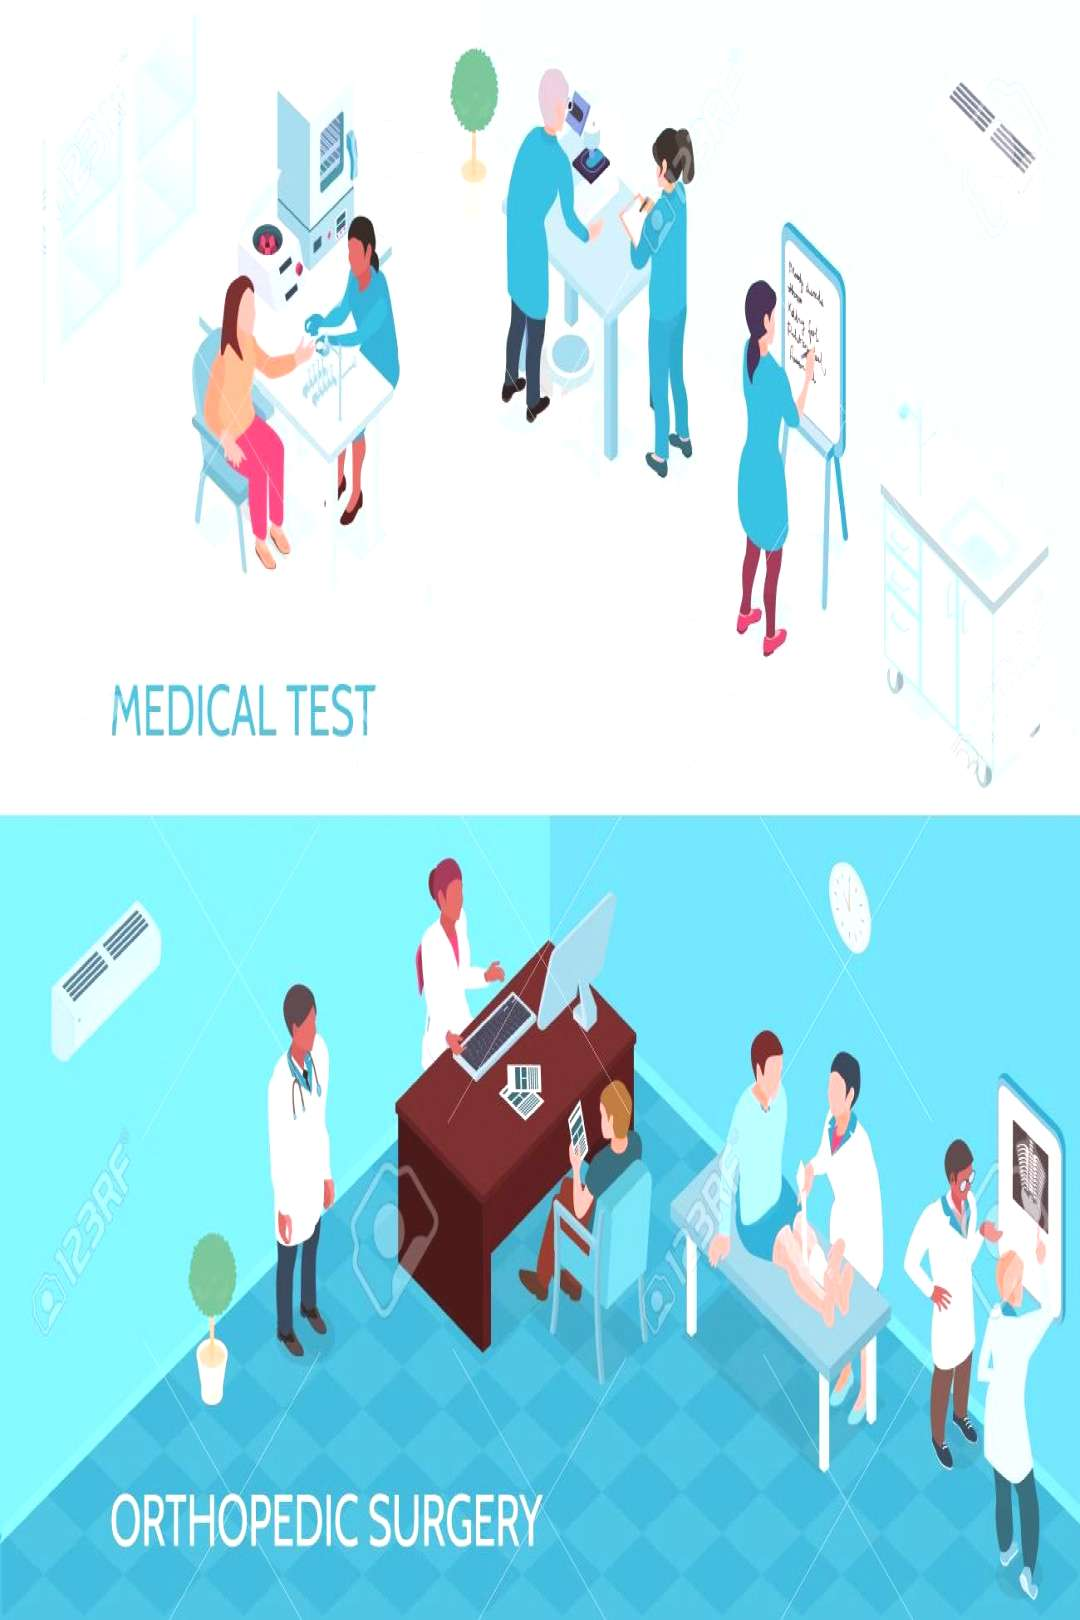 Medical help horizontal banners with doctors and nurses involved in testing and orthopedic surgery